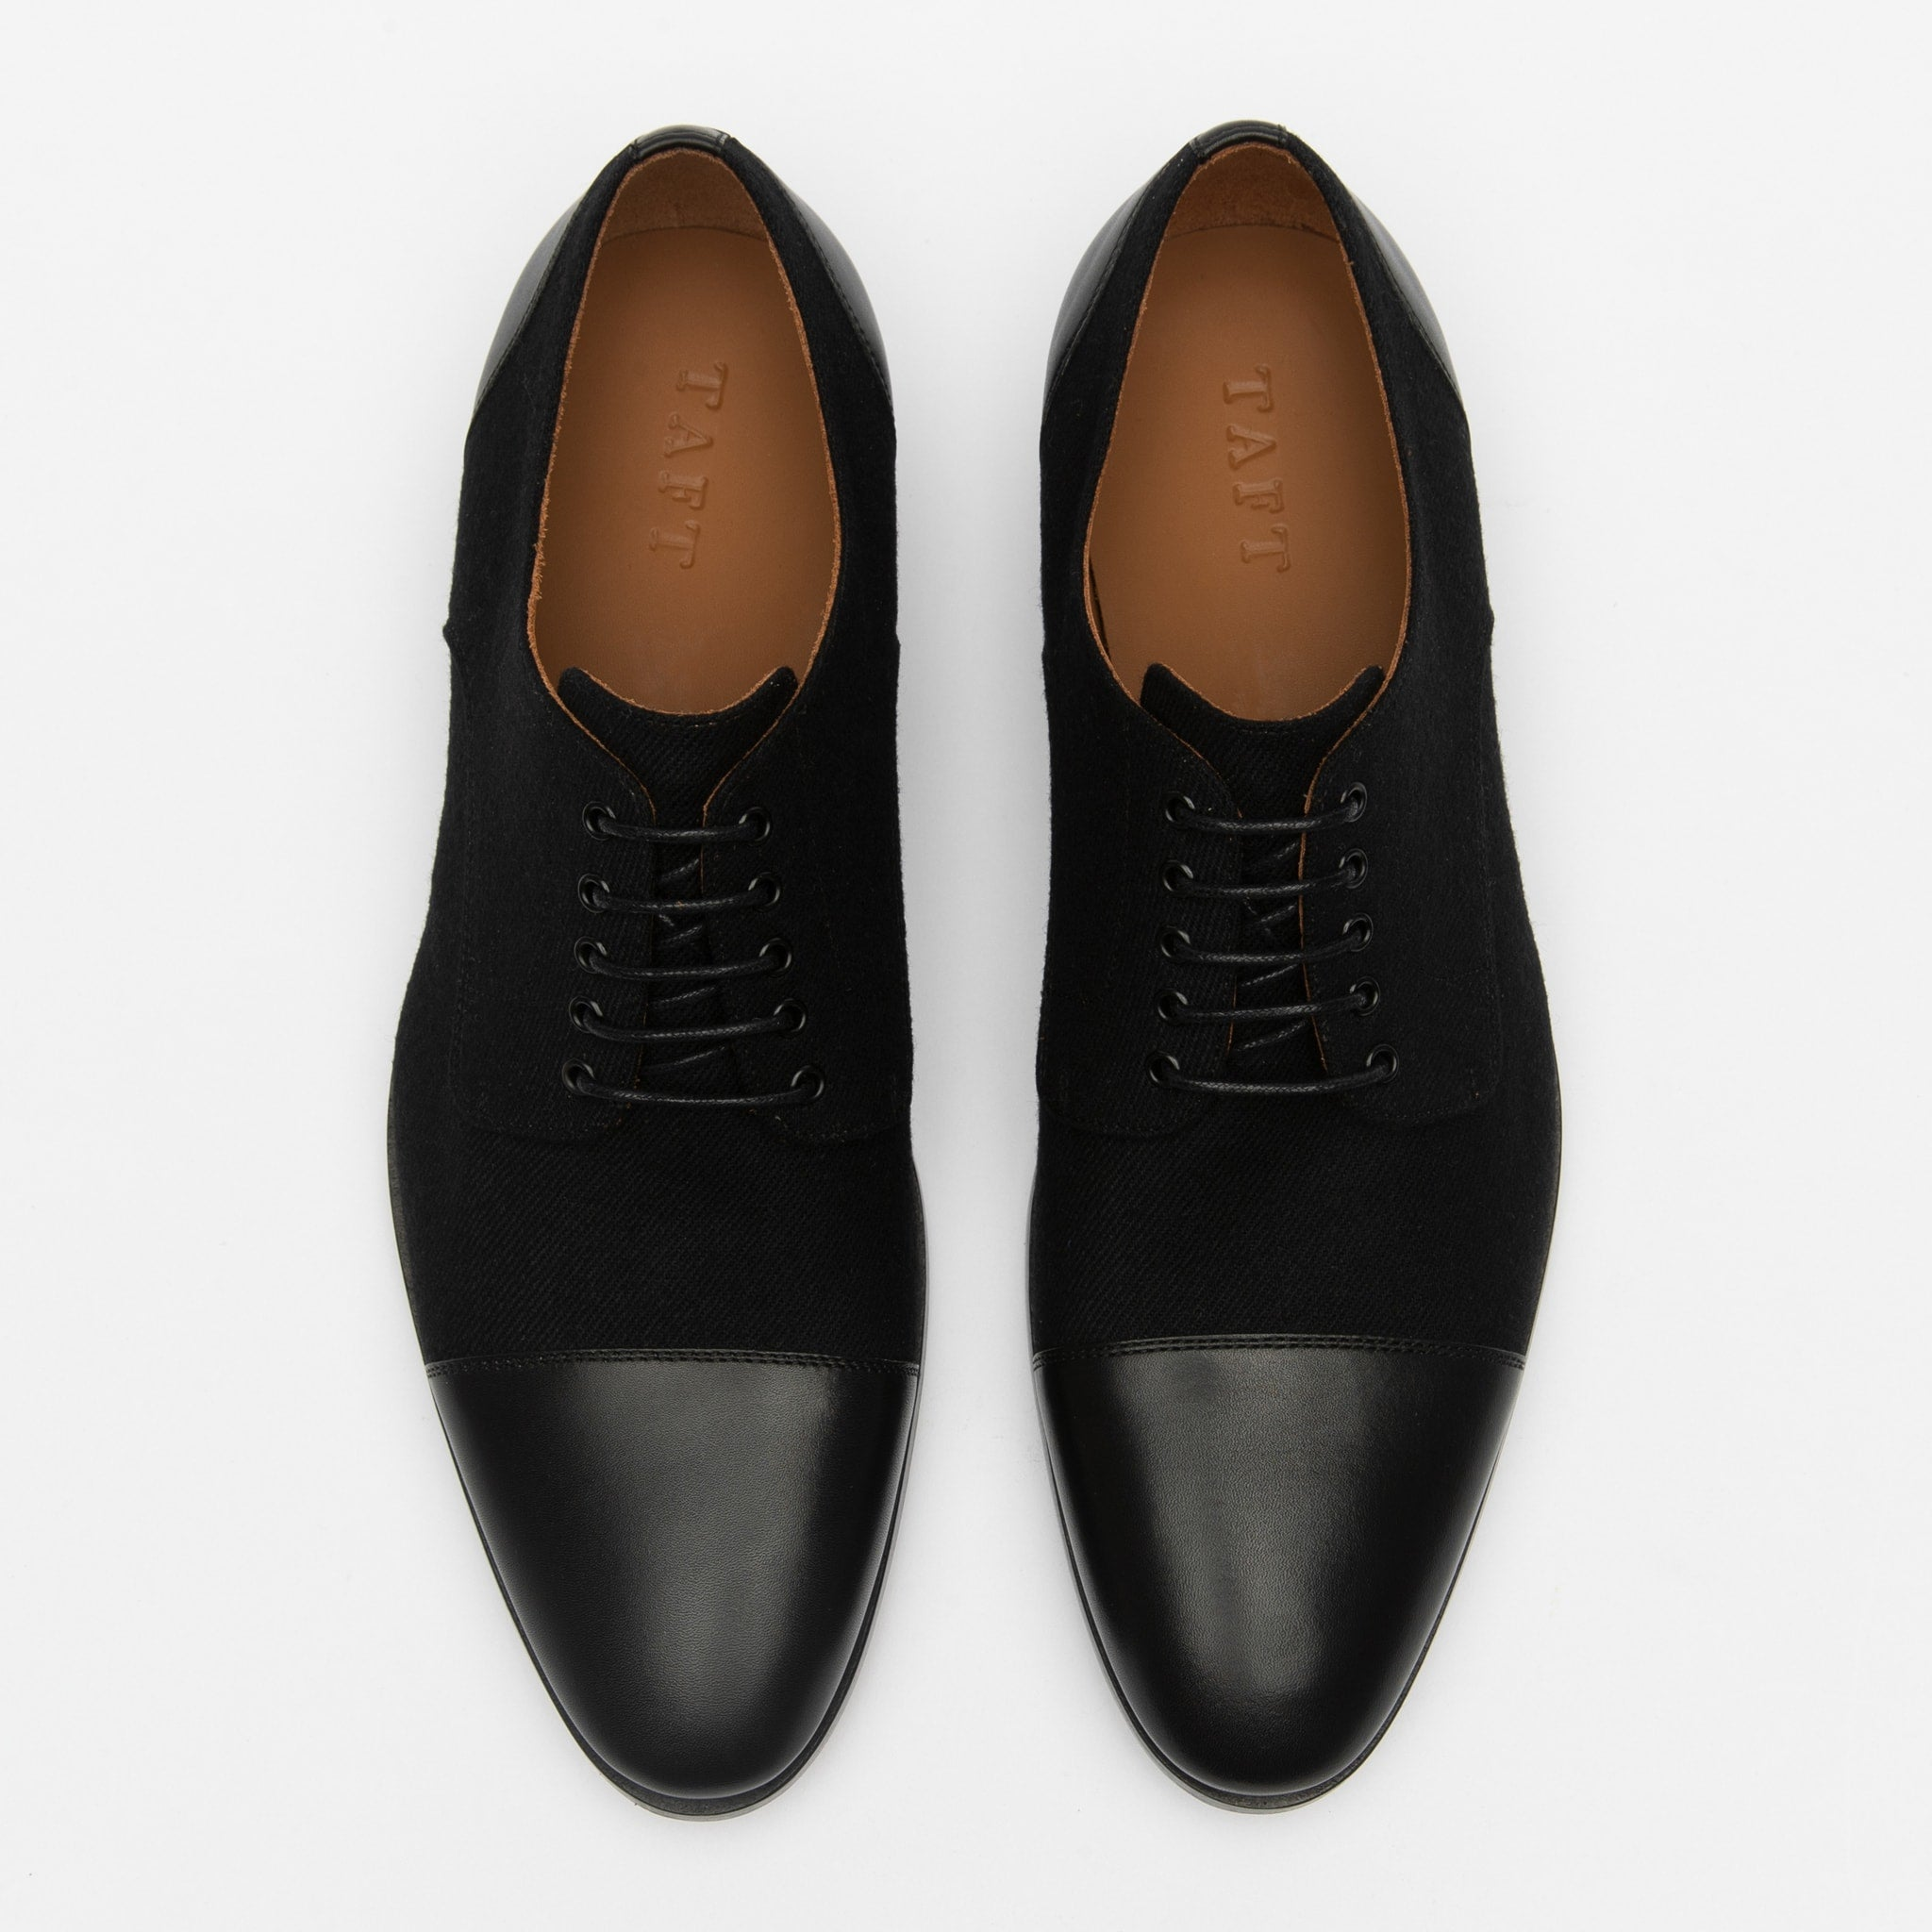 Jack Shoe in Black top view